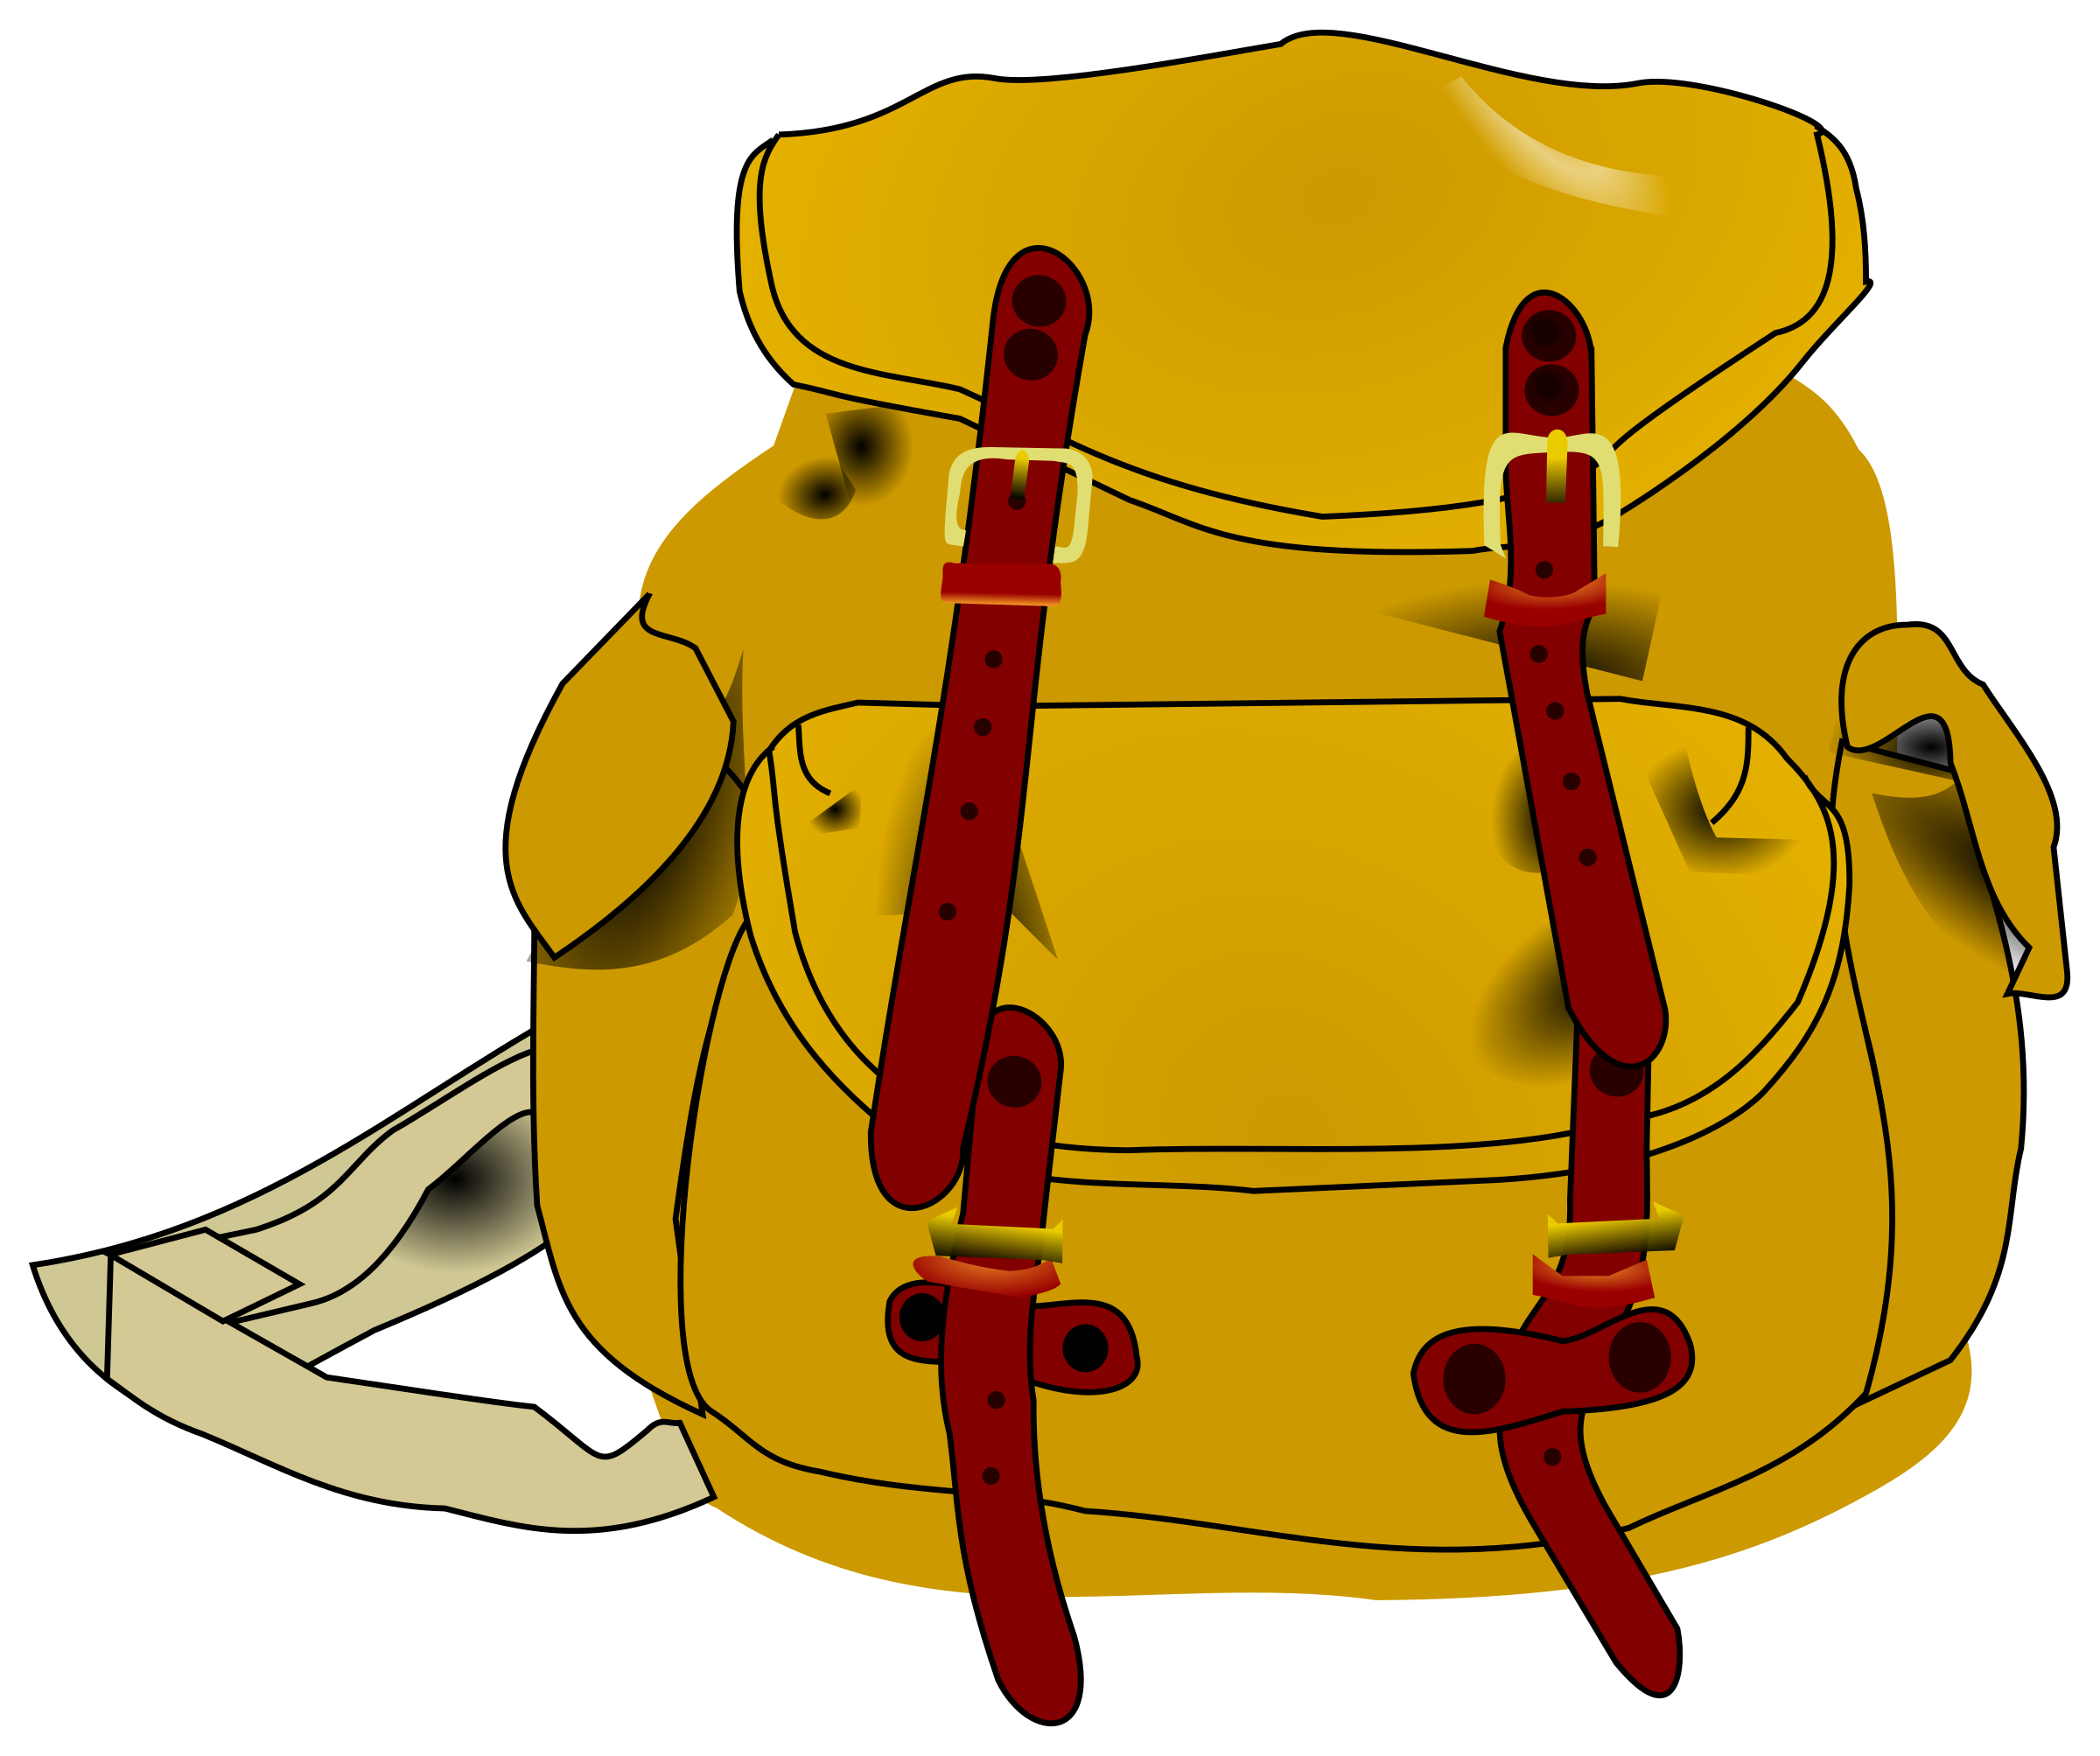 Backpack by opensourcebear